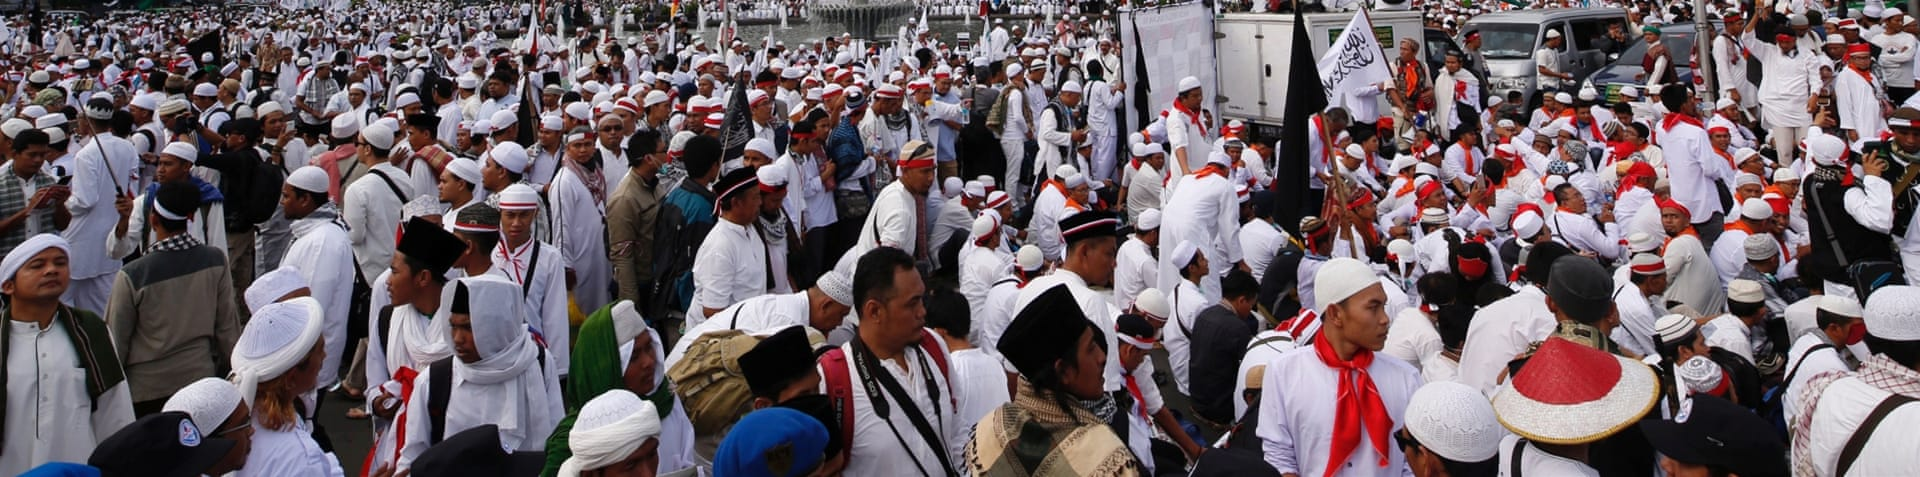 Crowds waved 'We Are Indonesia' signs and held a giant red-and-white national flag [Reuters]